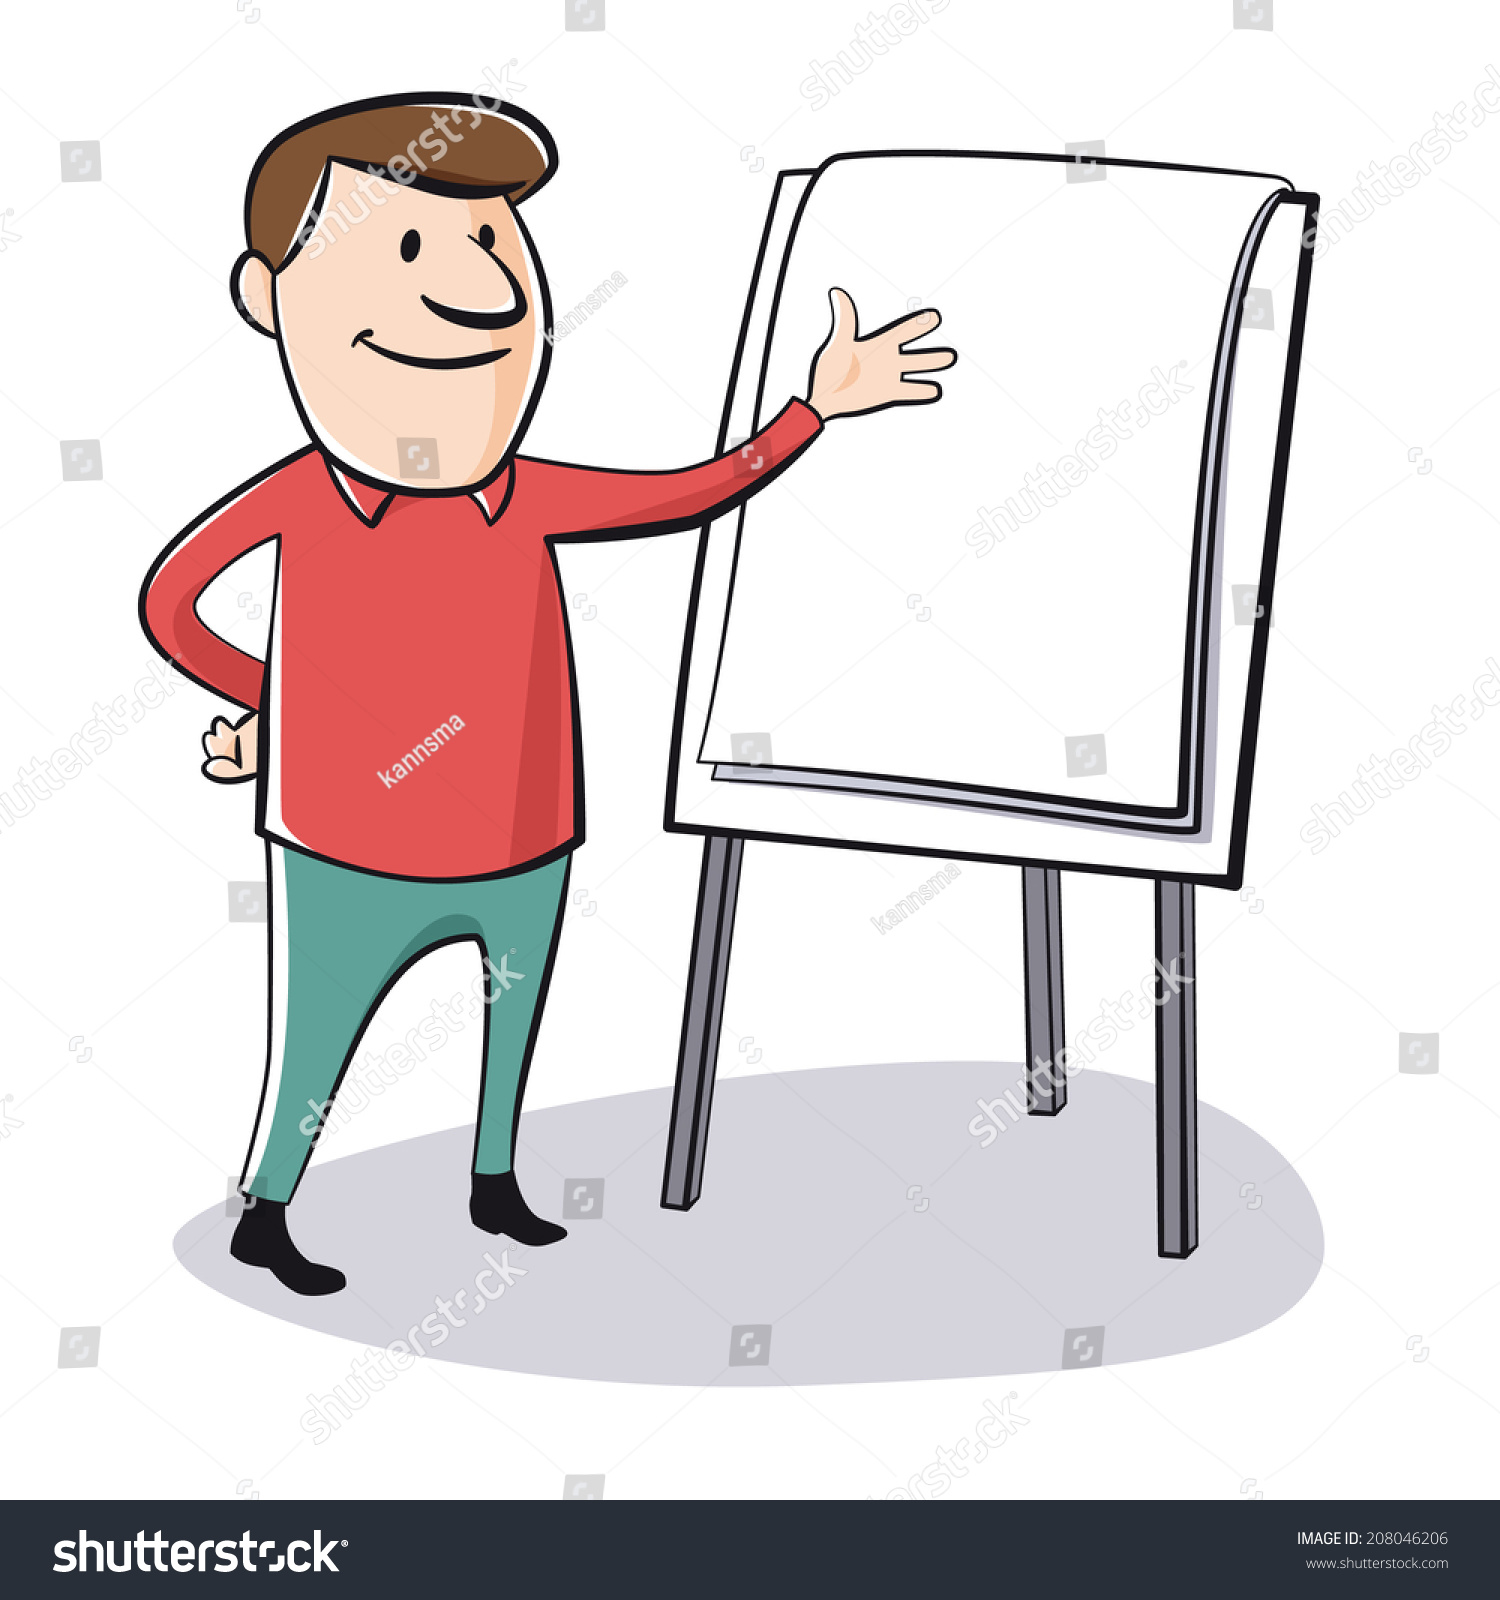 ppt clipart gallery - photo #39